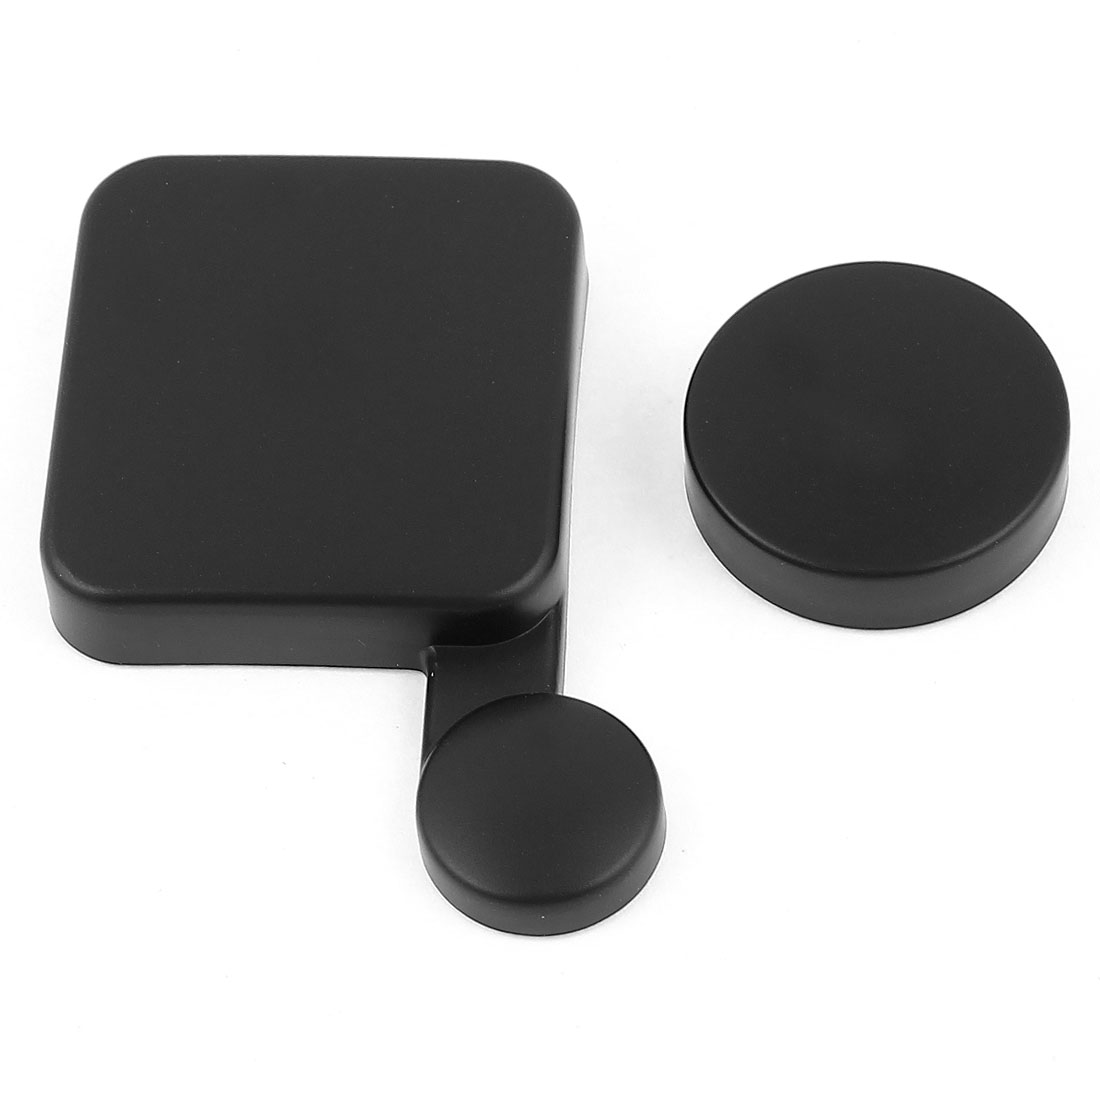 Lens Protector Cap Protective Housing Case Cover for Gopro HD 3 Sports Camera